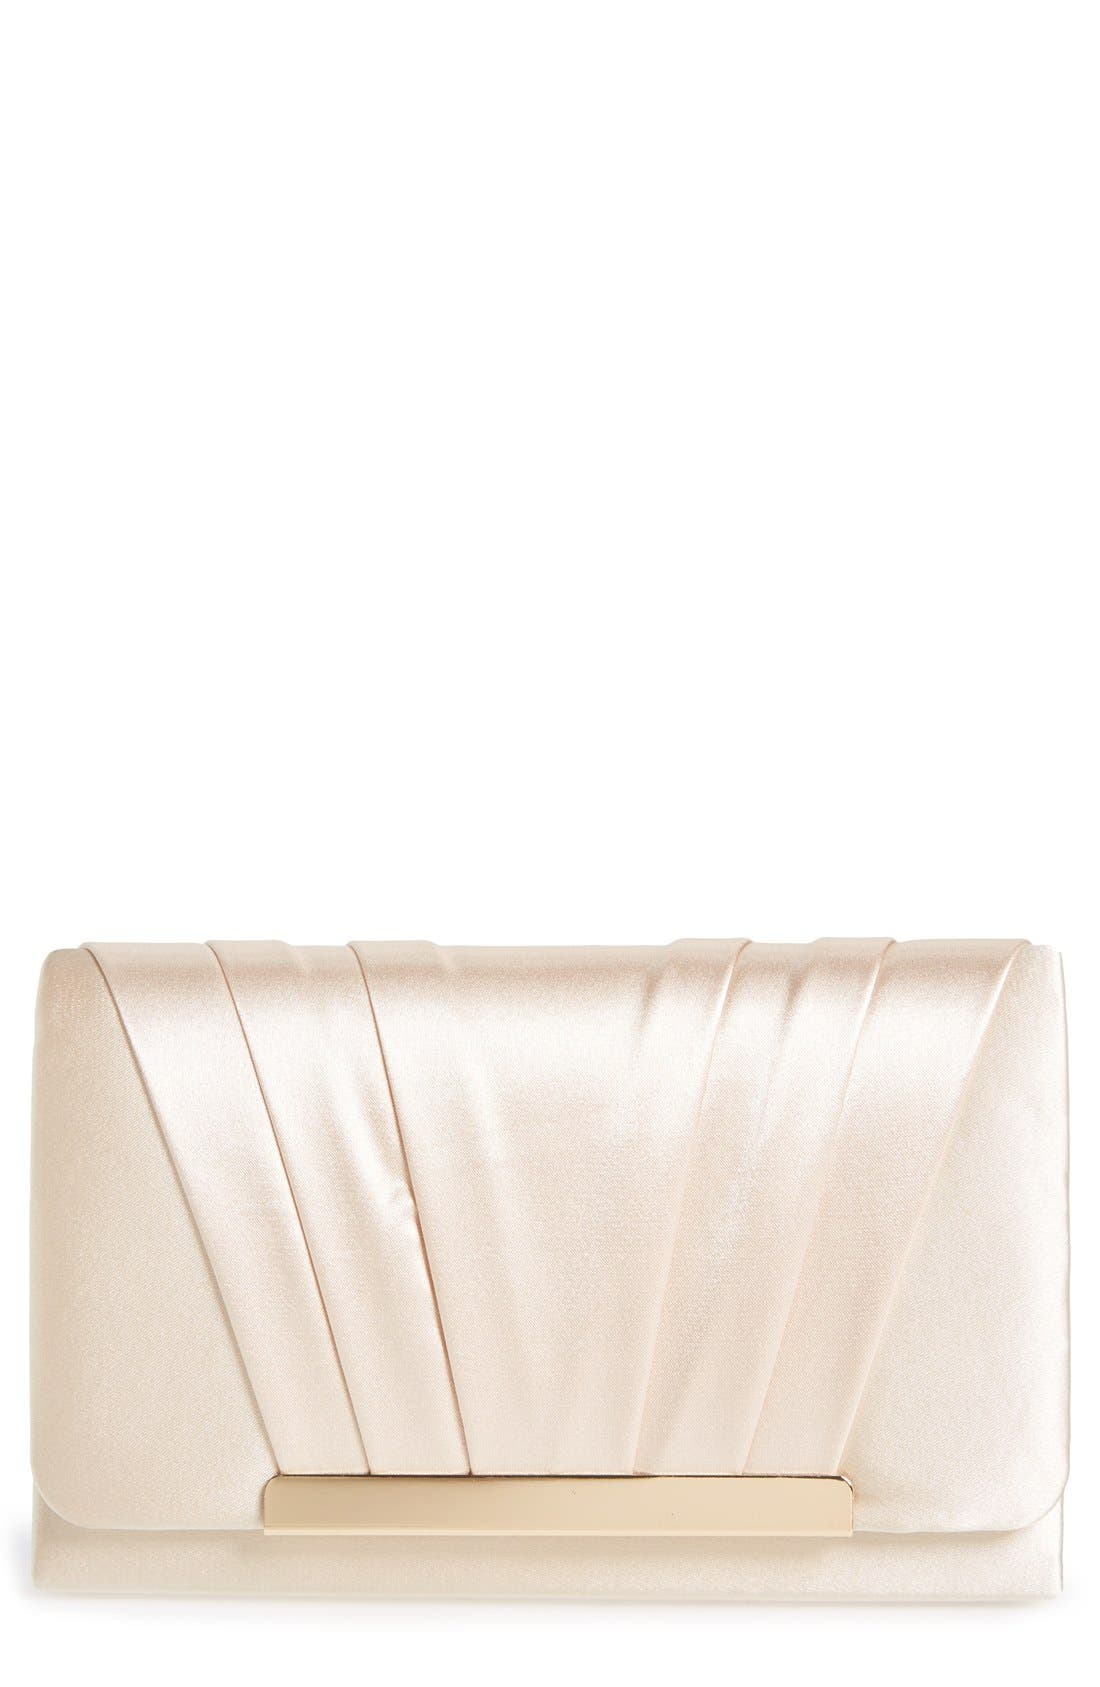 Alternate Image 1 Selected - Jessica McClintock 'Harper' Satin Clutch